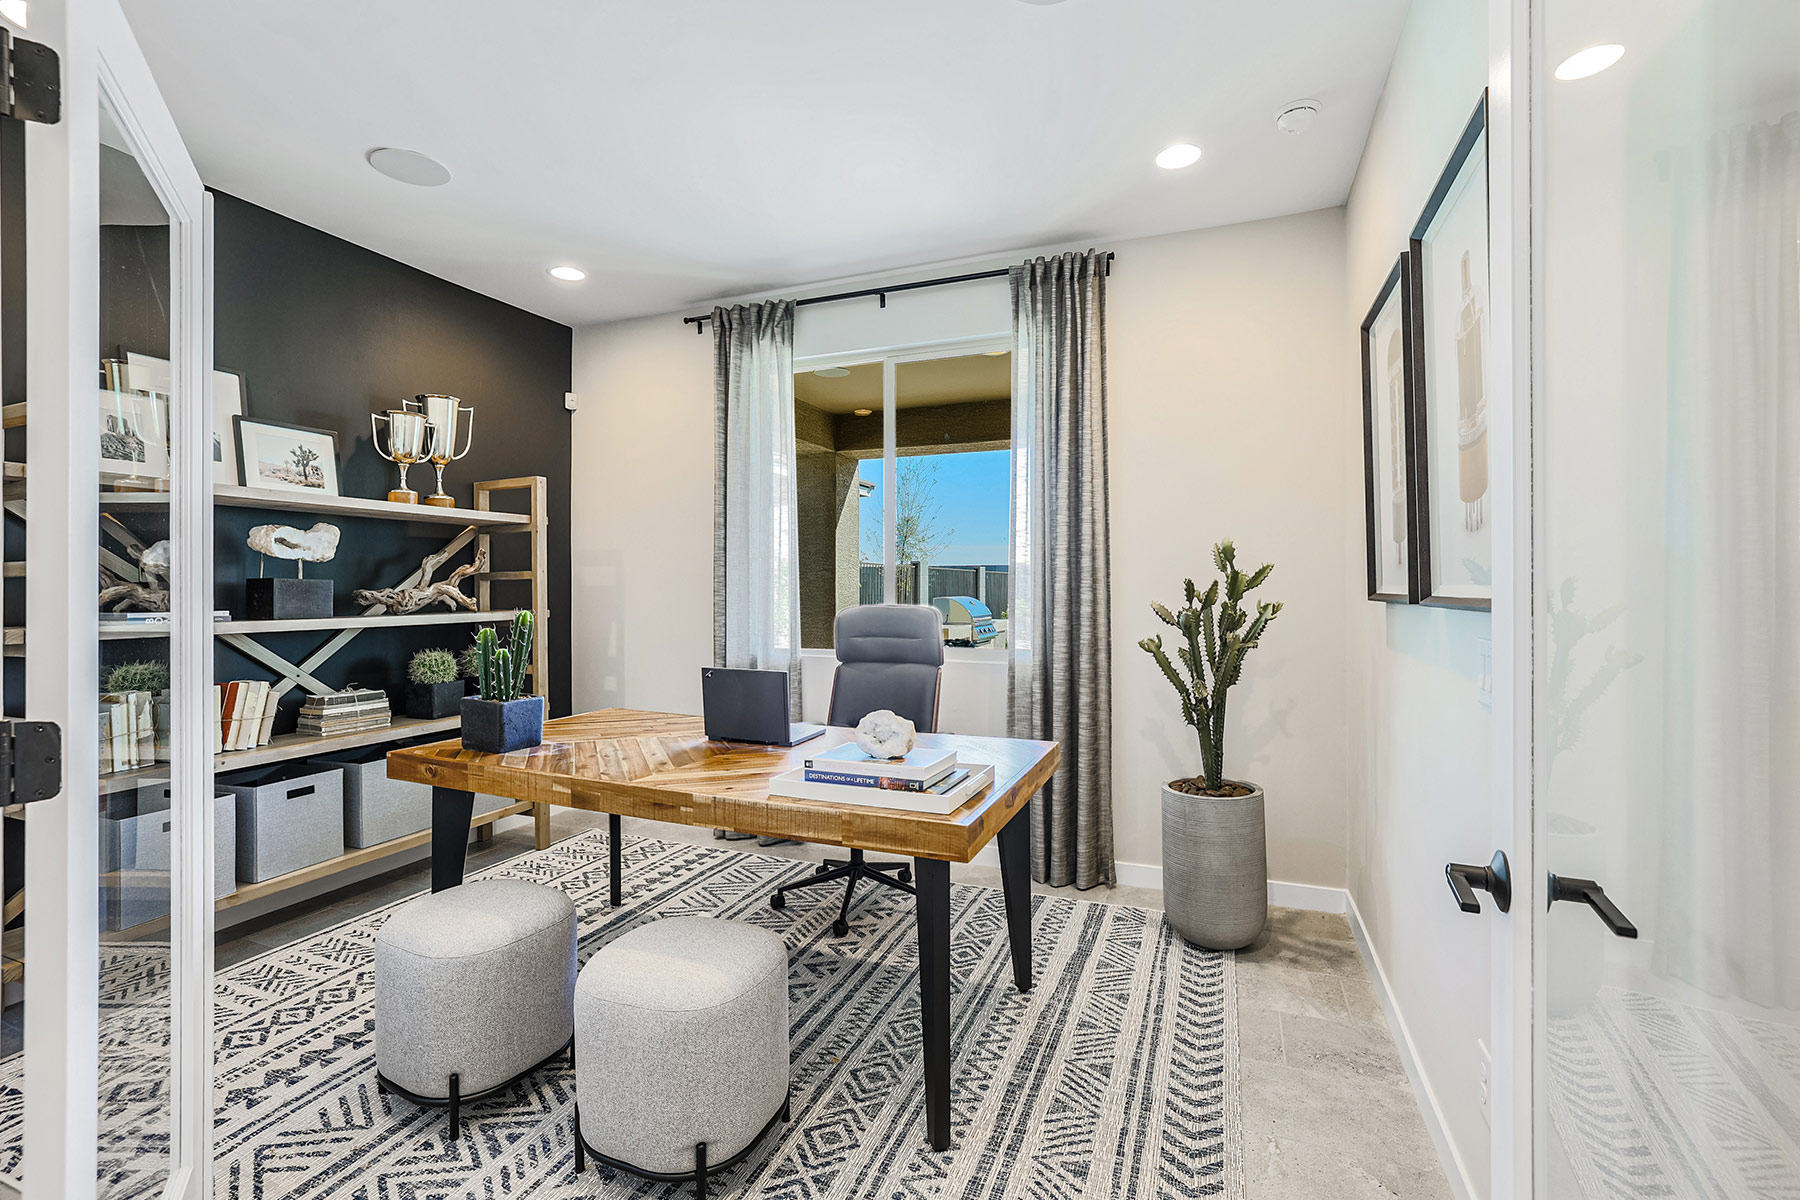 Aries Plan Study Room at Azure Canyon in Litchfield Park Arizona by Mattamy Homes